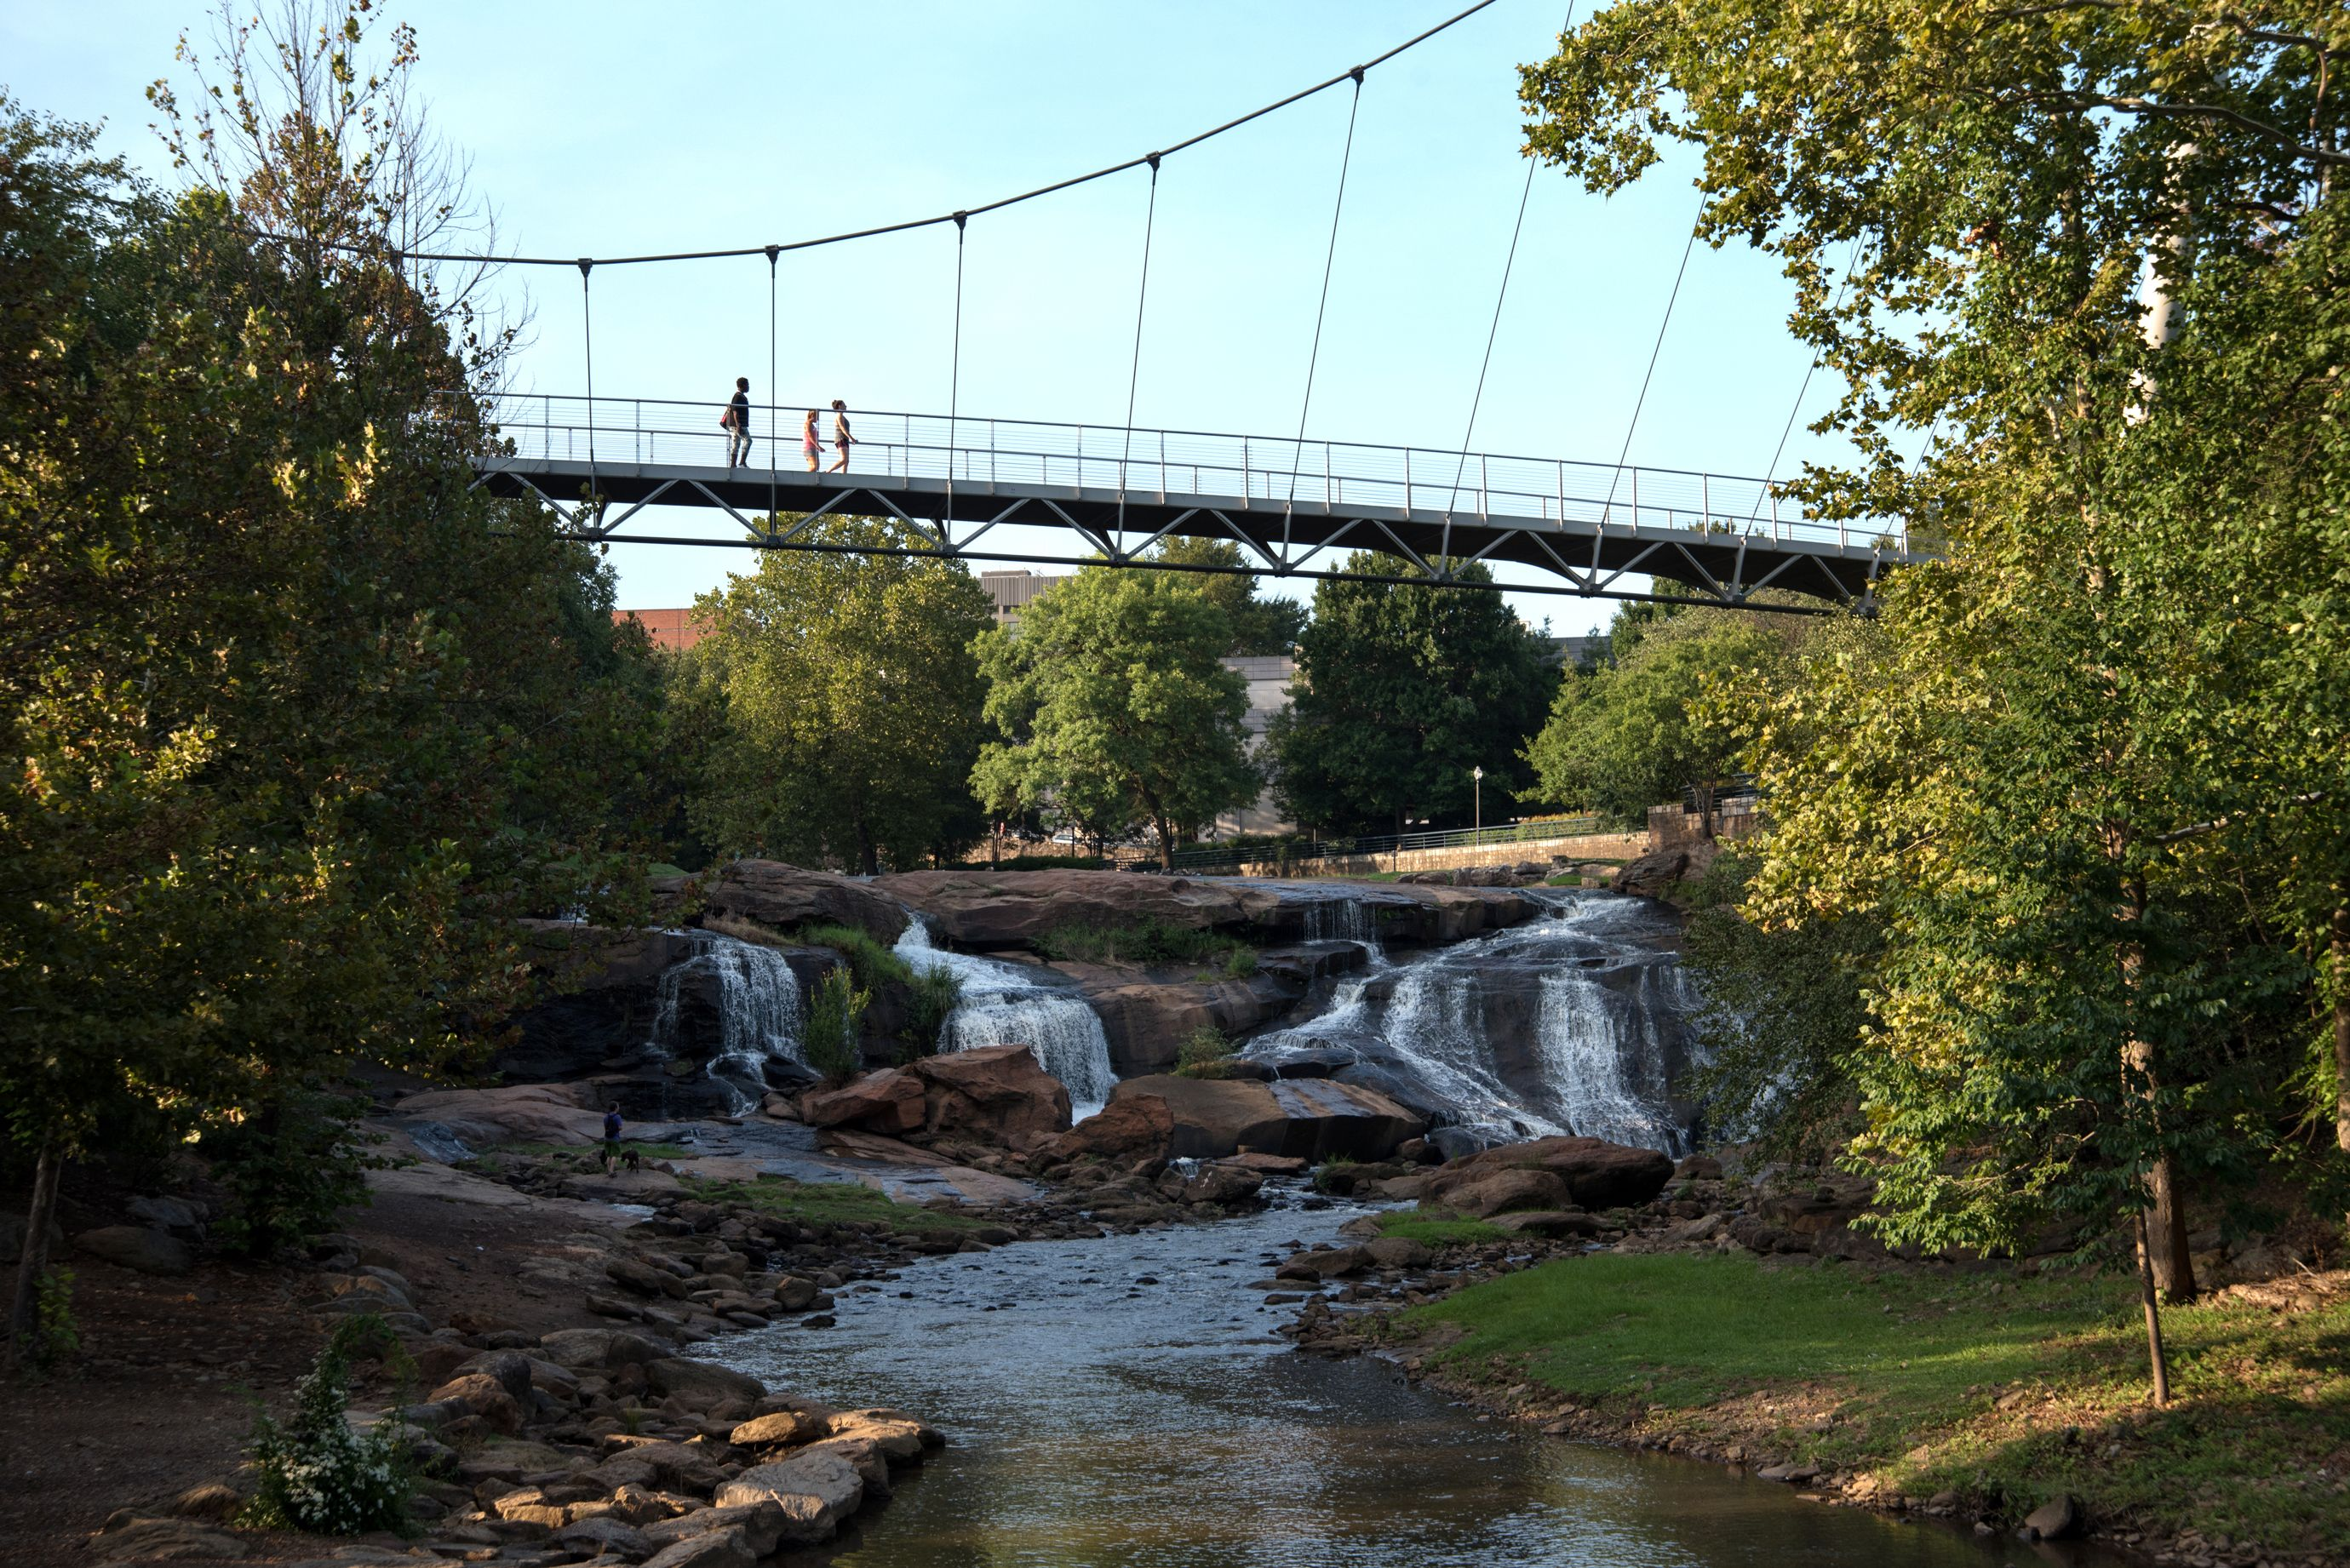 The pedestrian Liberty Bridge spans the Reedy River in downtown Greenville. (10 of 10)